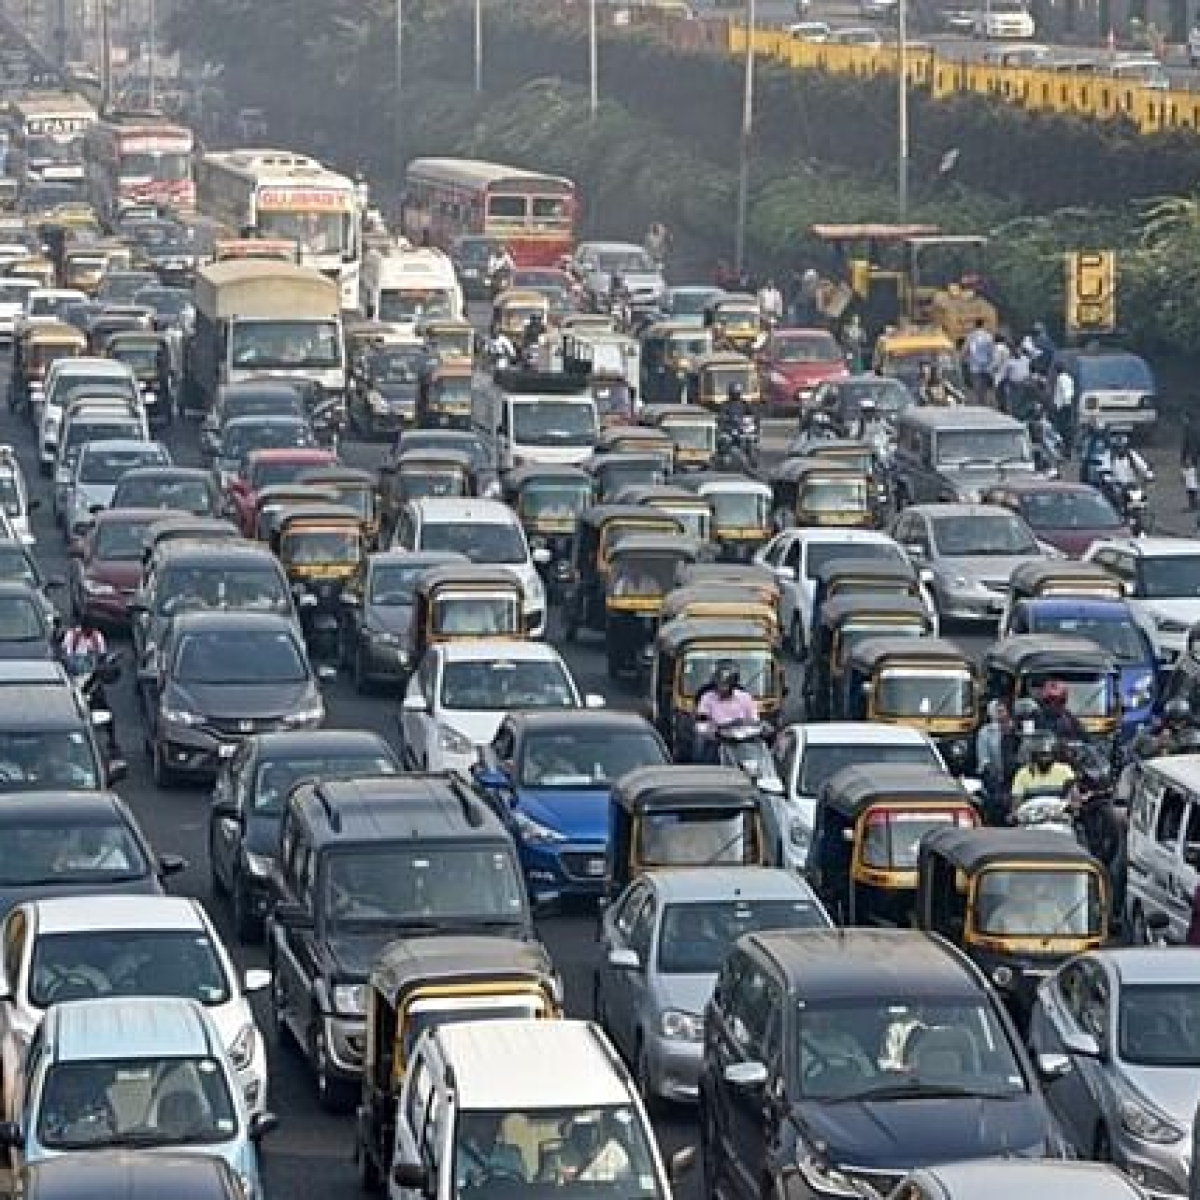 Mumbai Traffic Update: List of roads closed for repair on March 21, 2020